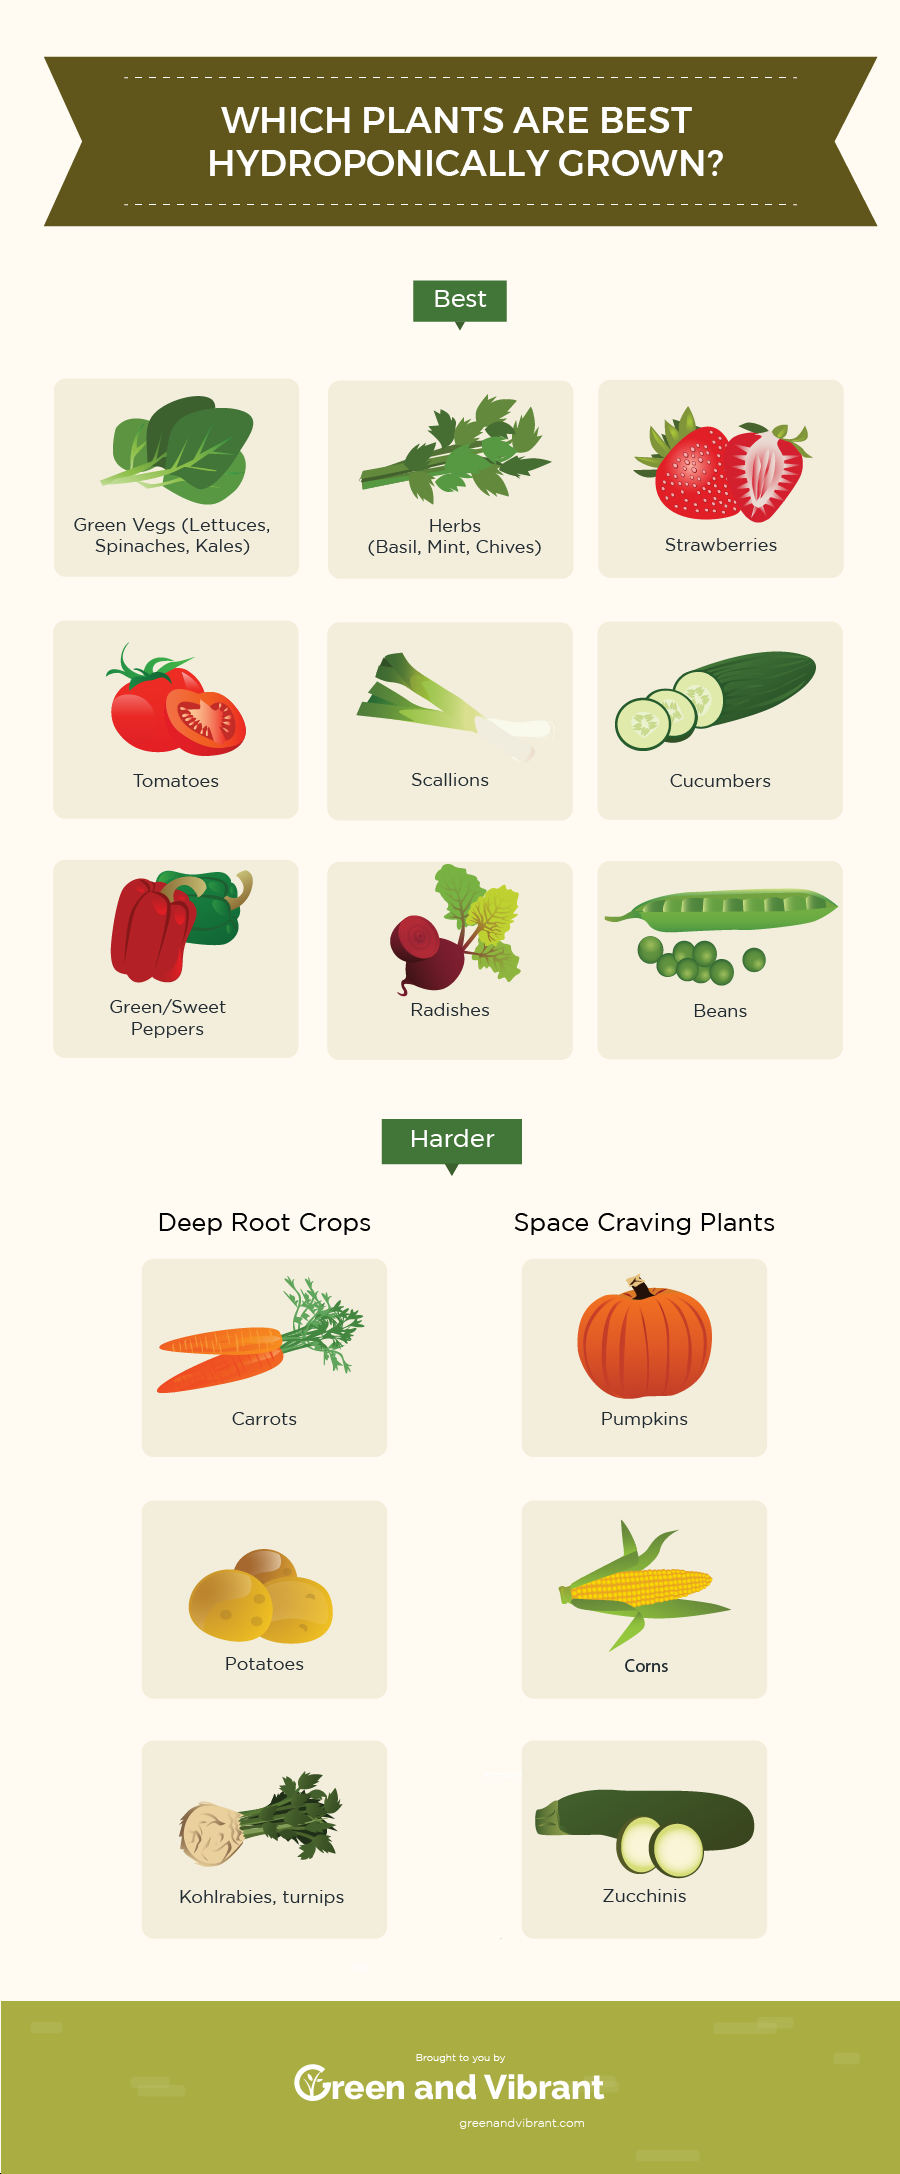 13 Best Easiest Plants (Vegetables, Herbs, and Fruits) That Can Be Hydroponically Grown is part of Hydroponic plants, Hydroponic farming, Hydroponic growing, Hydroponics, Easy plants, Hydroponics diy - Choosing what to grow in Hydroponics is a very important and enjoyable part when starting with Hydroponics  Here you'll find a list of some edible easytogrow plants (infographic included) that work very well with the Hydroponic cultivation